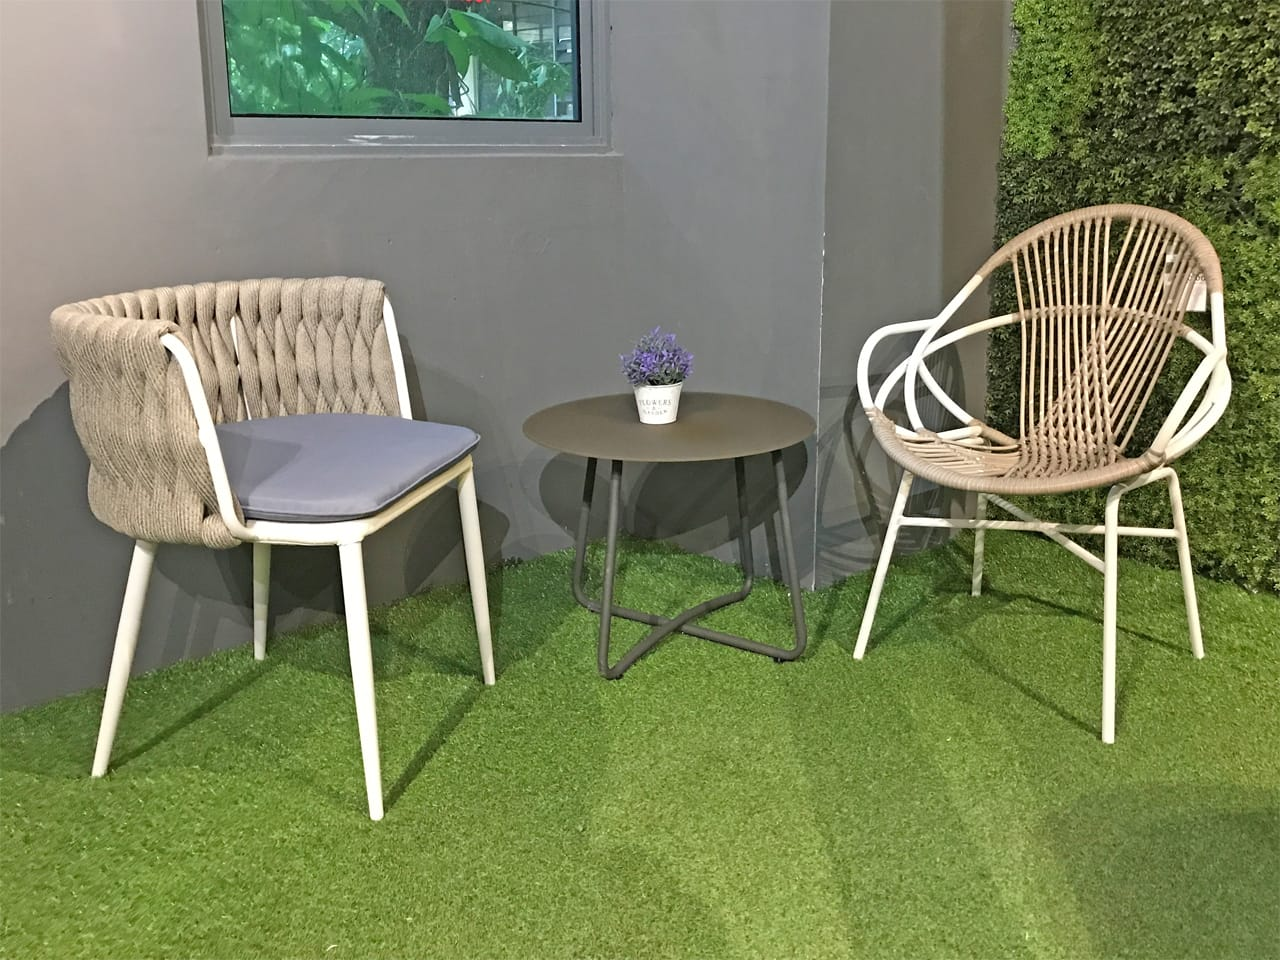 [Santori Coffee Table, Bali Armchair & Webster Outdoor Armchair]